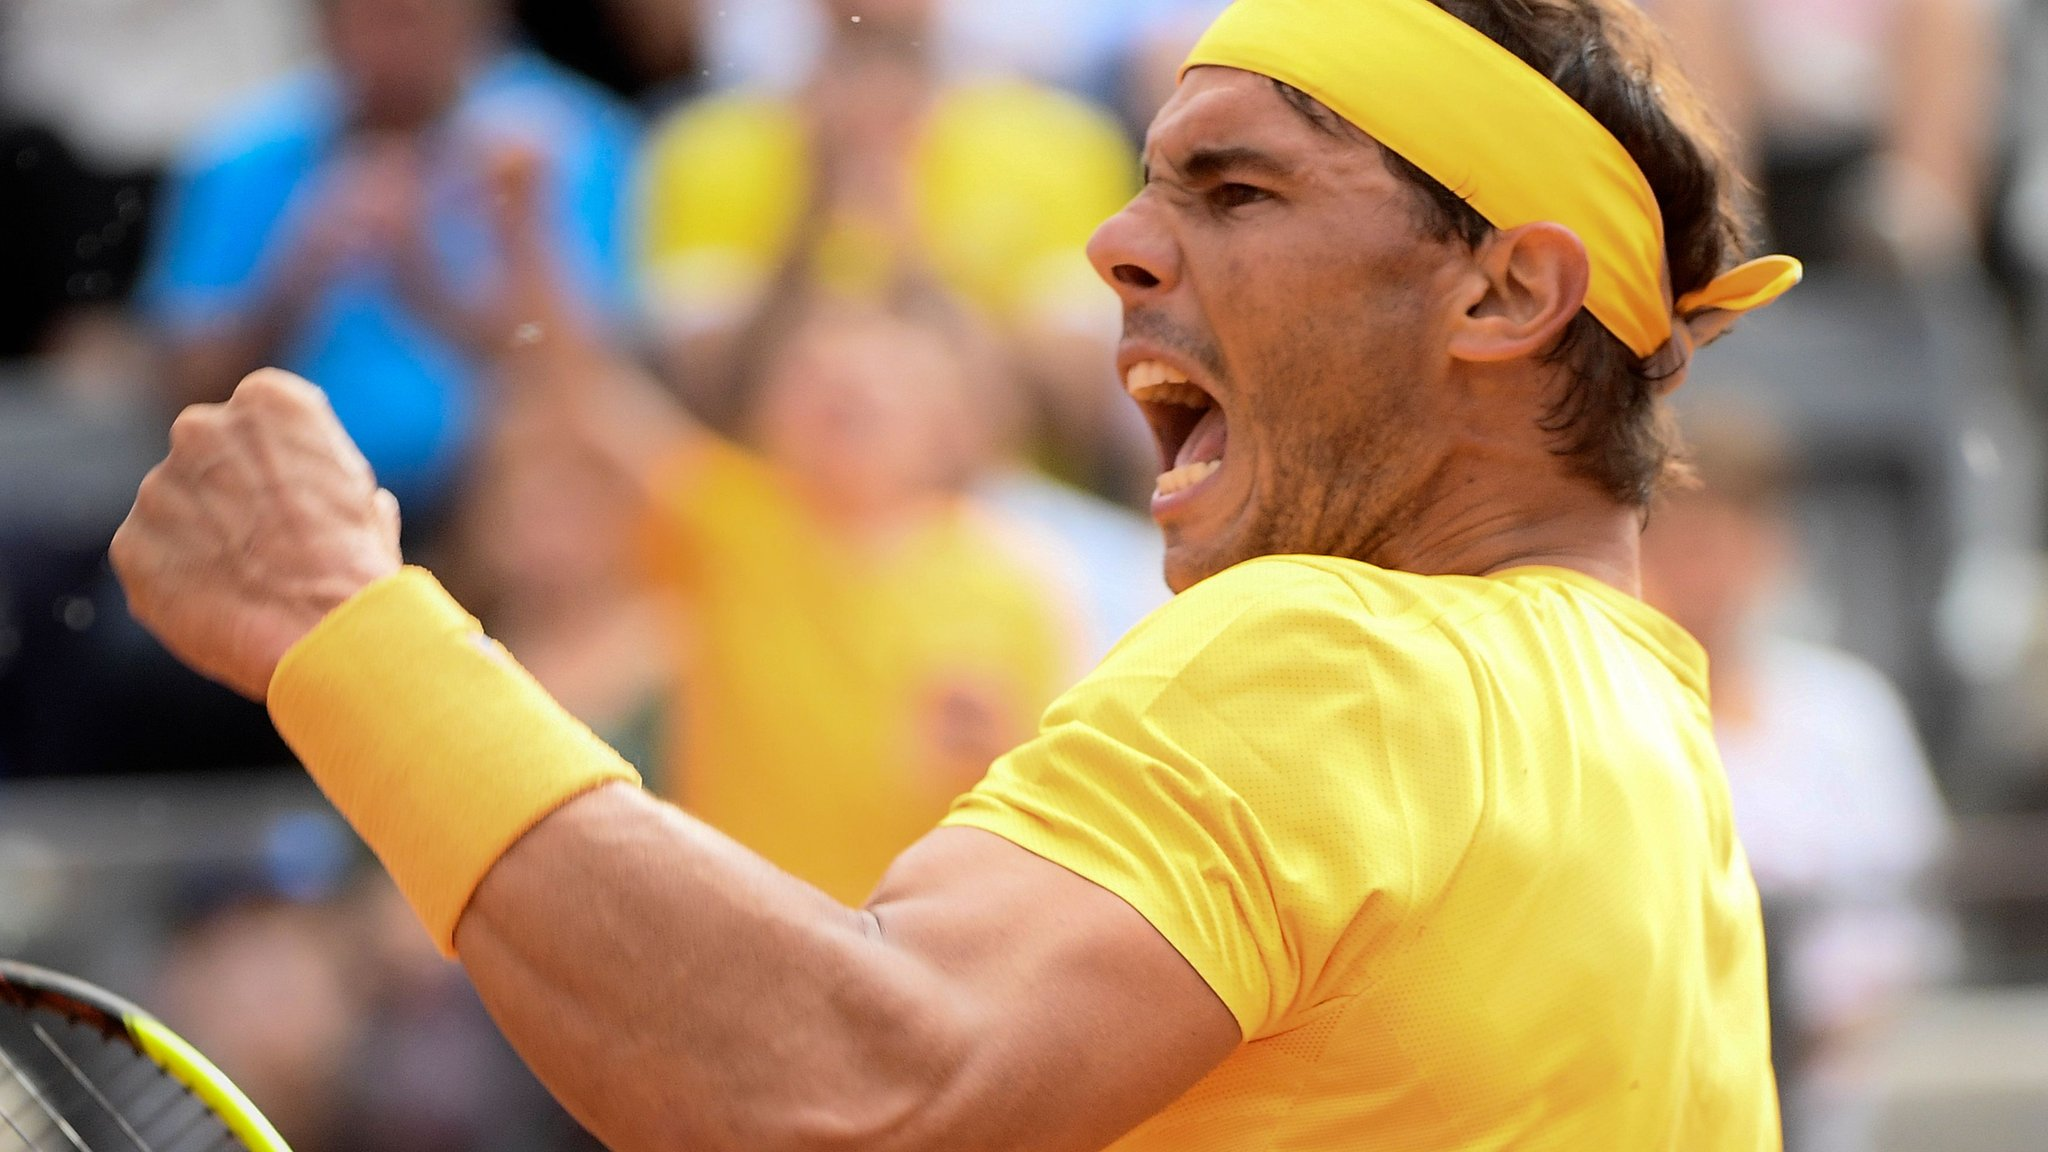 Nadal world number one after Italian win